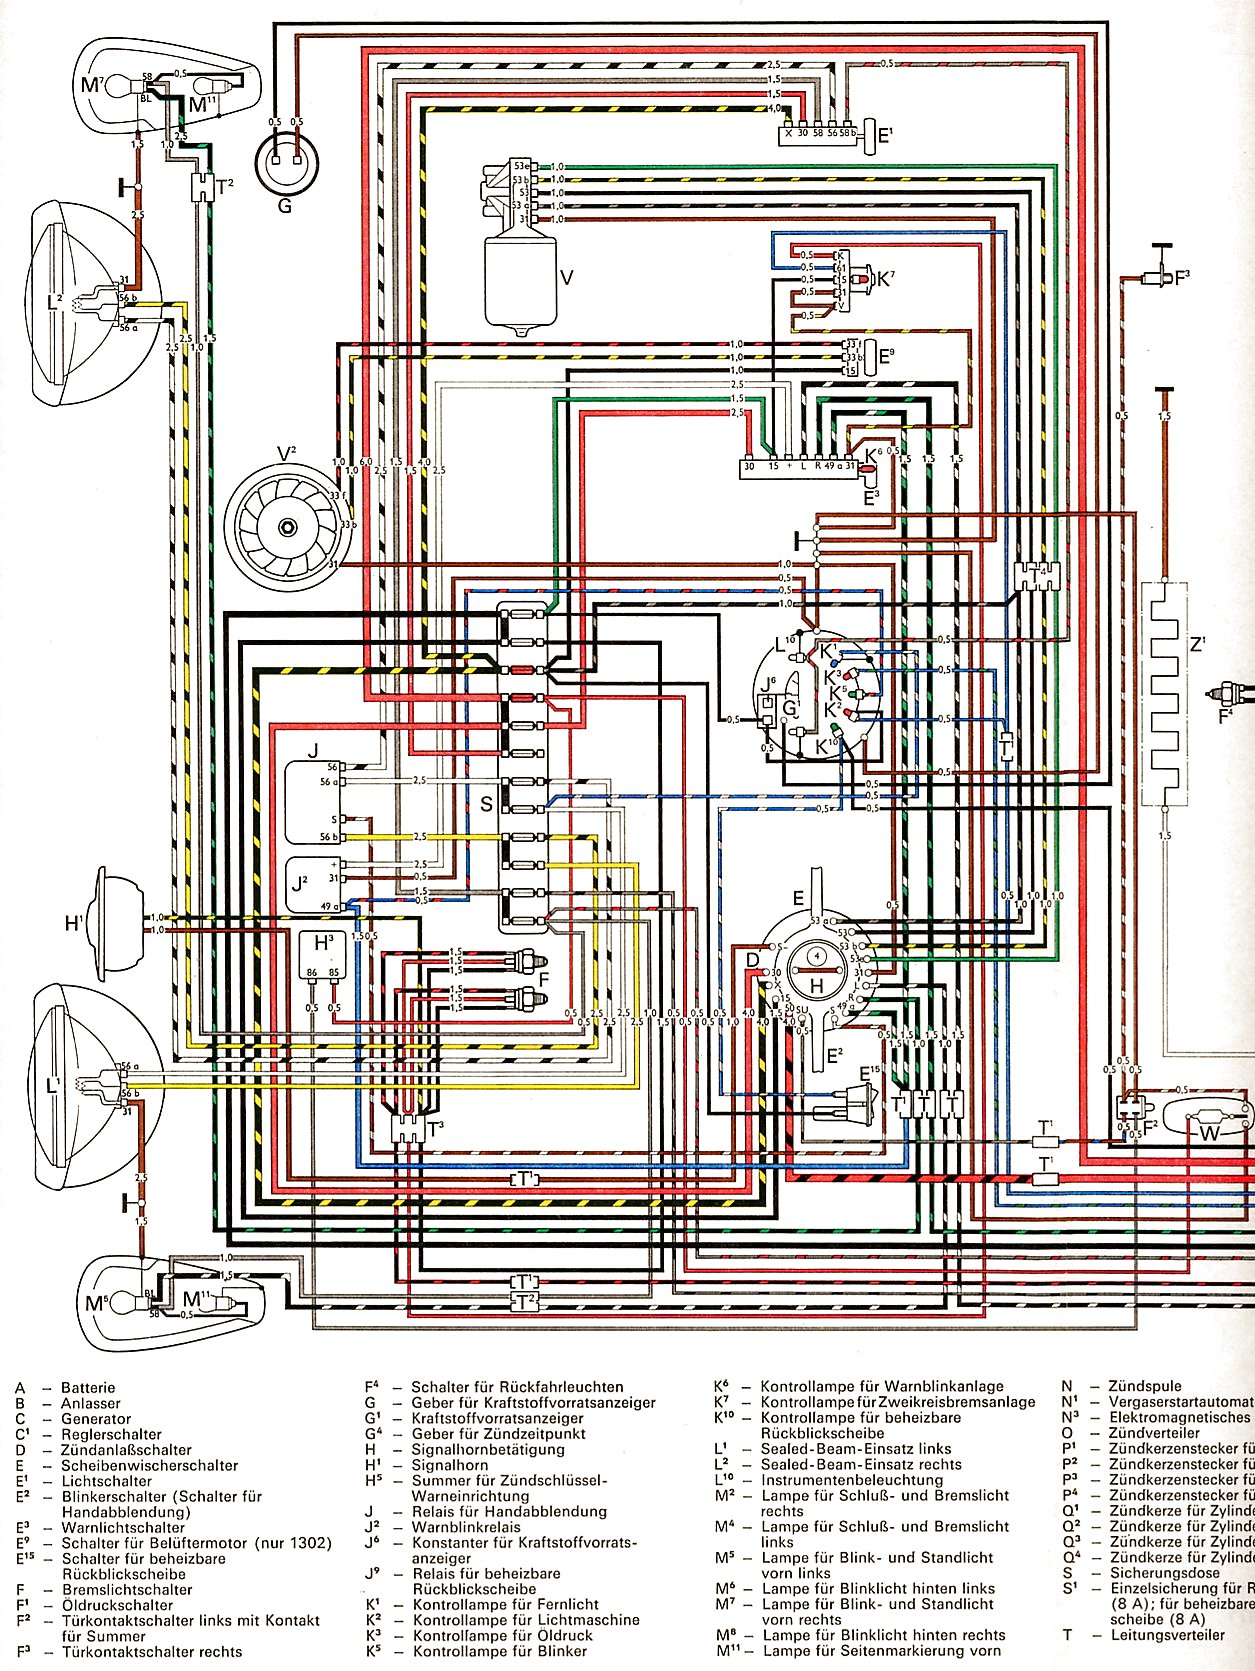 1300_and_1302_USA_from_August_1971 1 wiring help 1974 vw beetle shoptalkforums com 1973 vw super beetle wiring diagram at sewacar.co